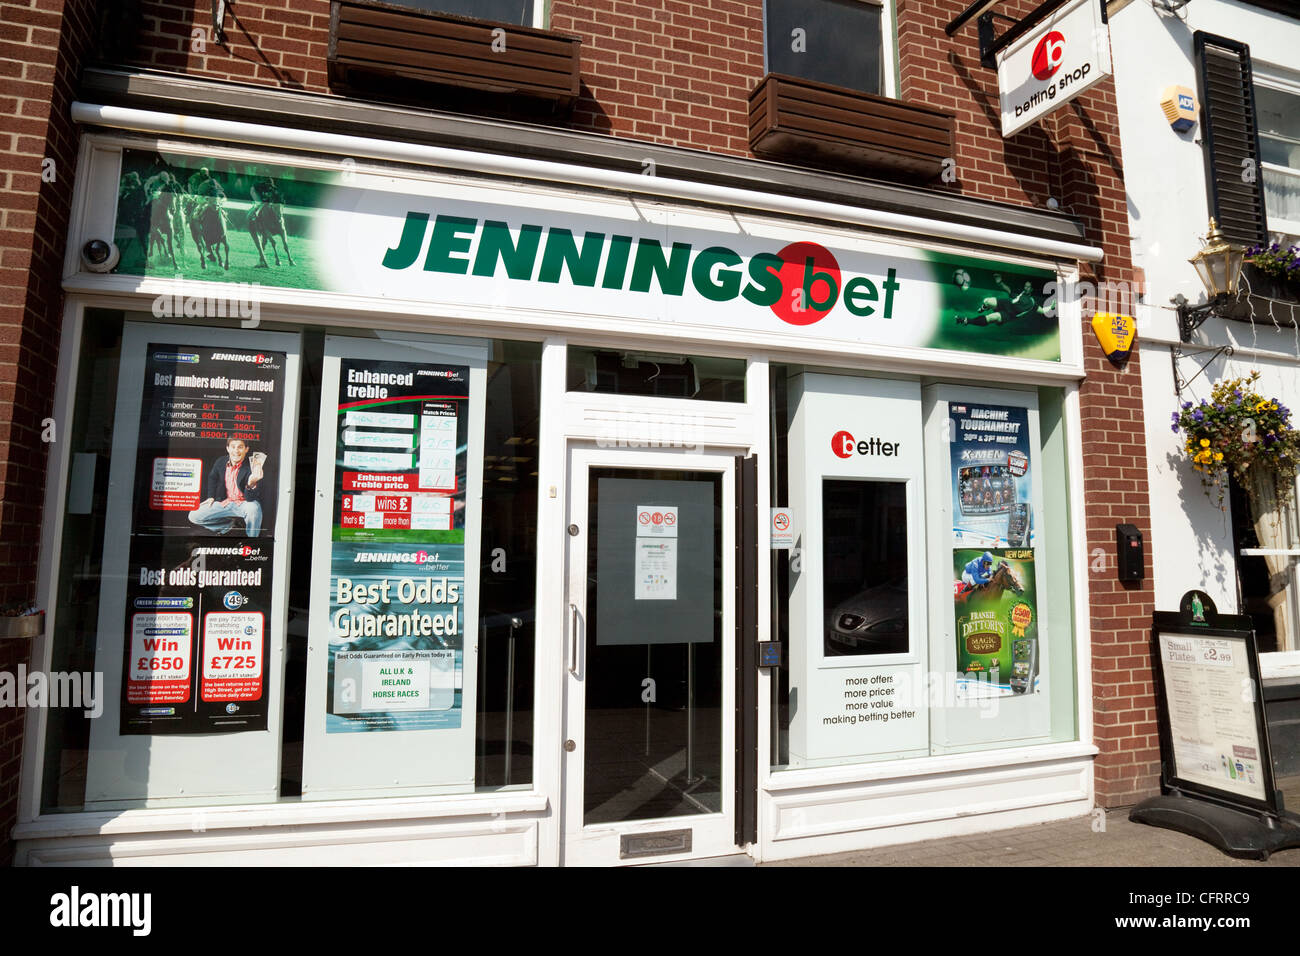 Betting shop jobs in east london csgo lounge betting rules holdem